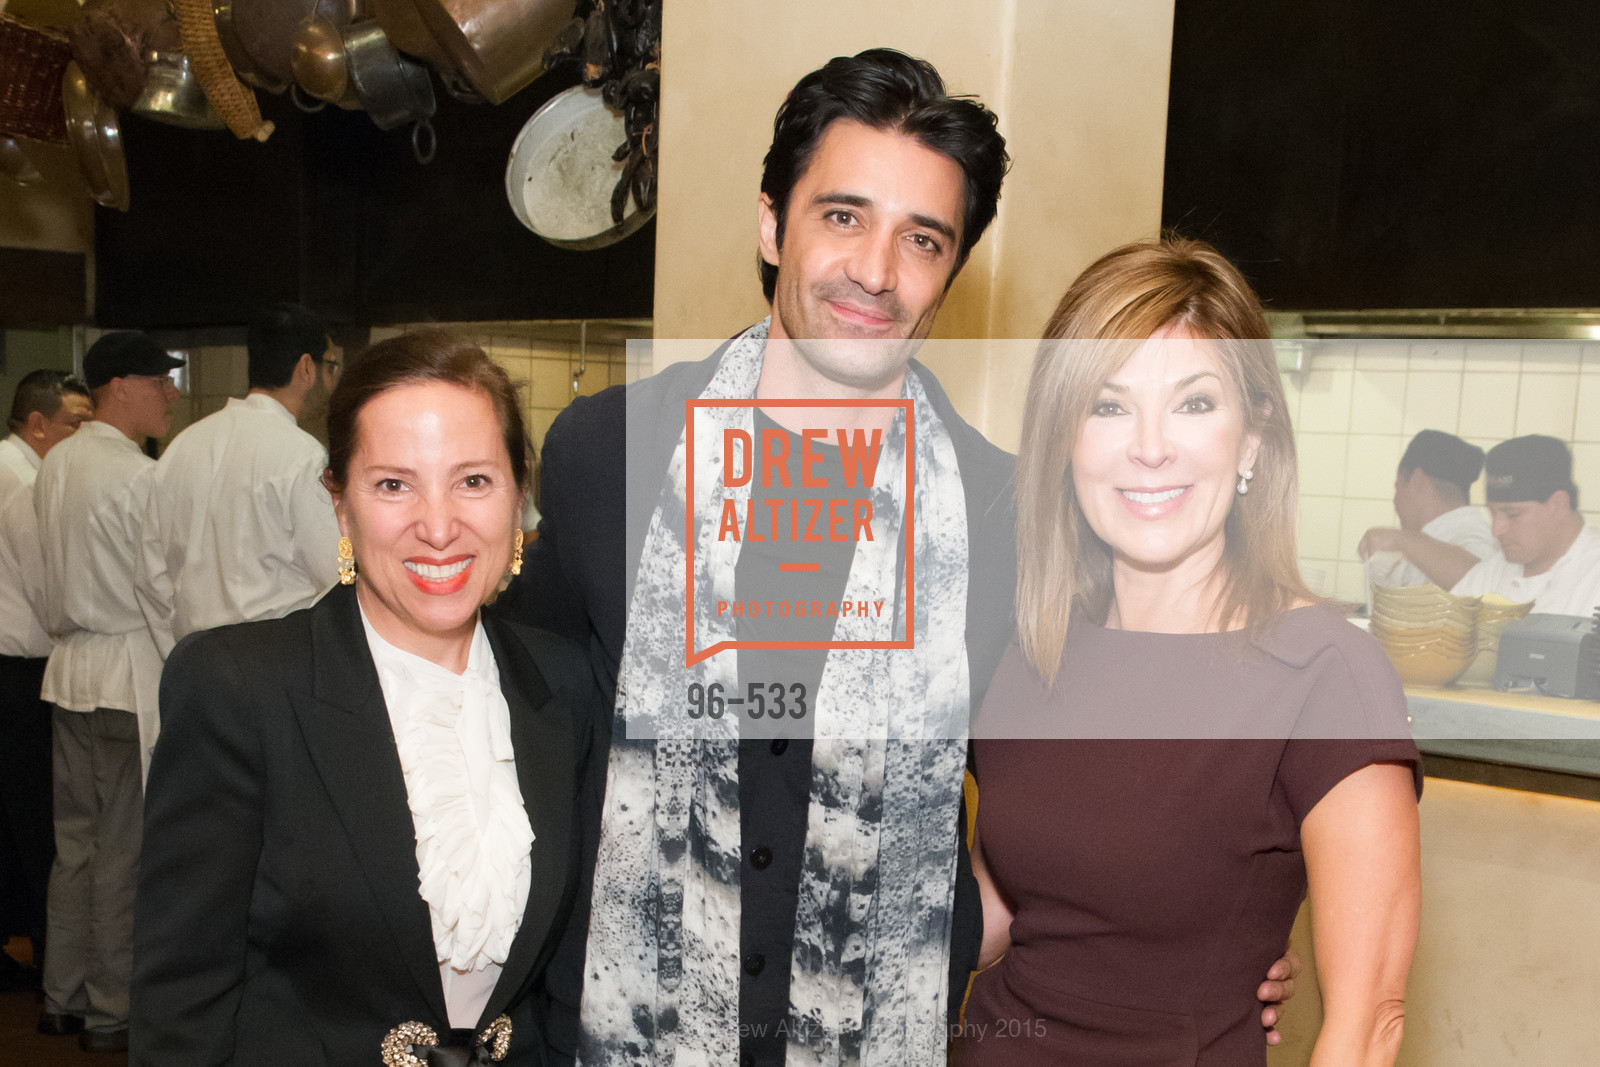 Eleni Kounalakis, Gilles Marini, Vicki Liviakis, Hellenic Charity Ball Cocktail Reception, Kokkari. 200 Jackson St, San Francisco, CA 94111, November 13th, 2015,Drew Altizer, Drew Altizer Photography, full-service event agency, private events, San Francisco photographer, photographer California